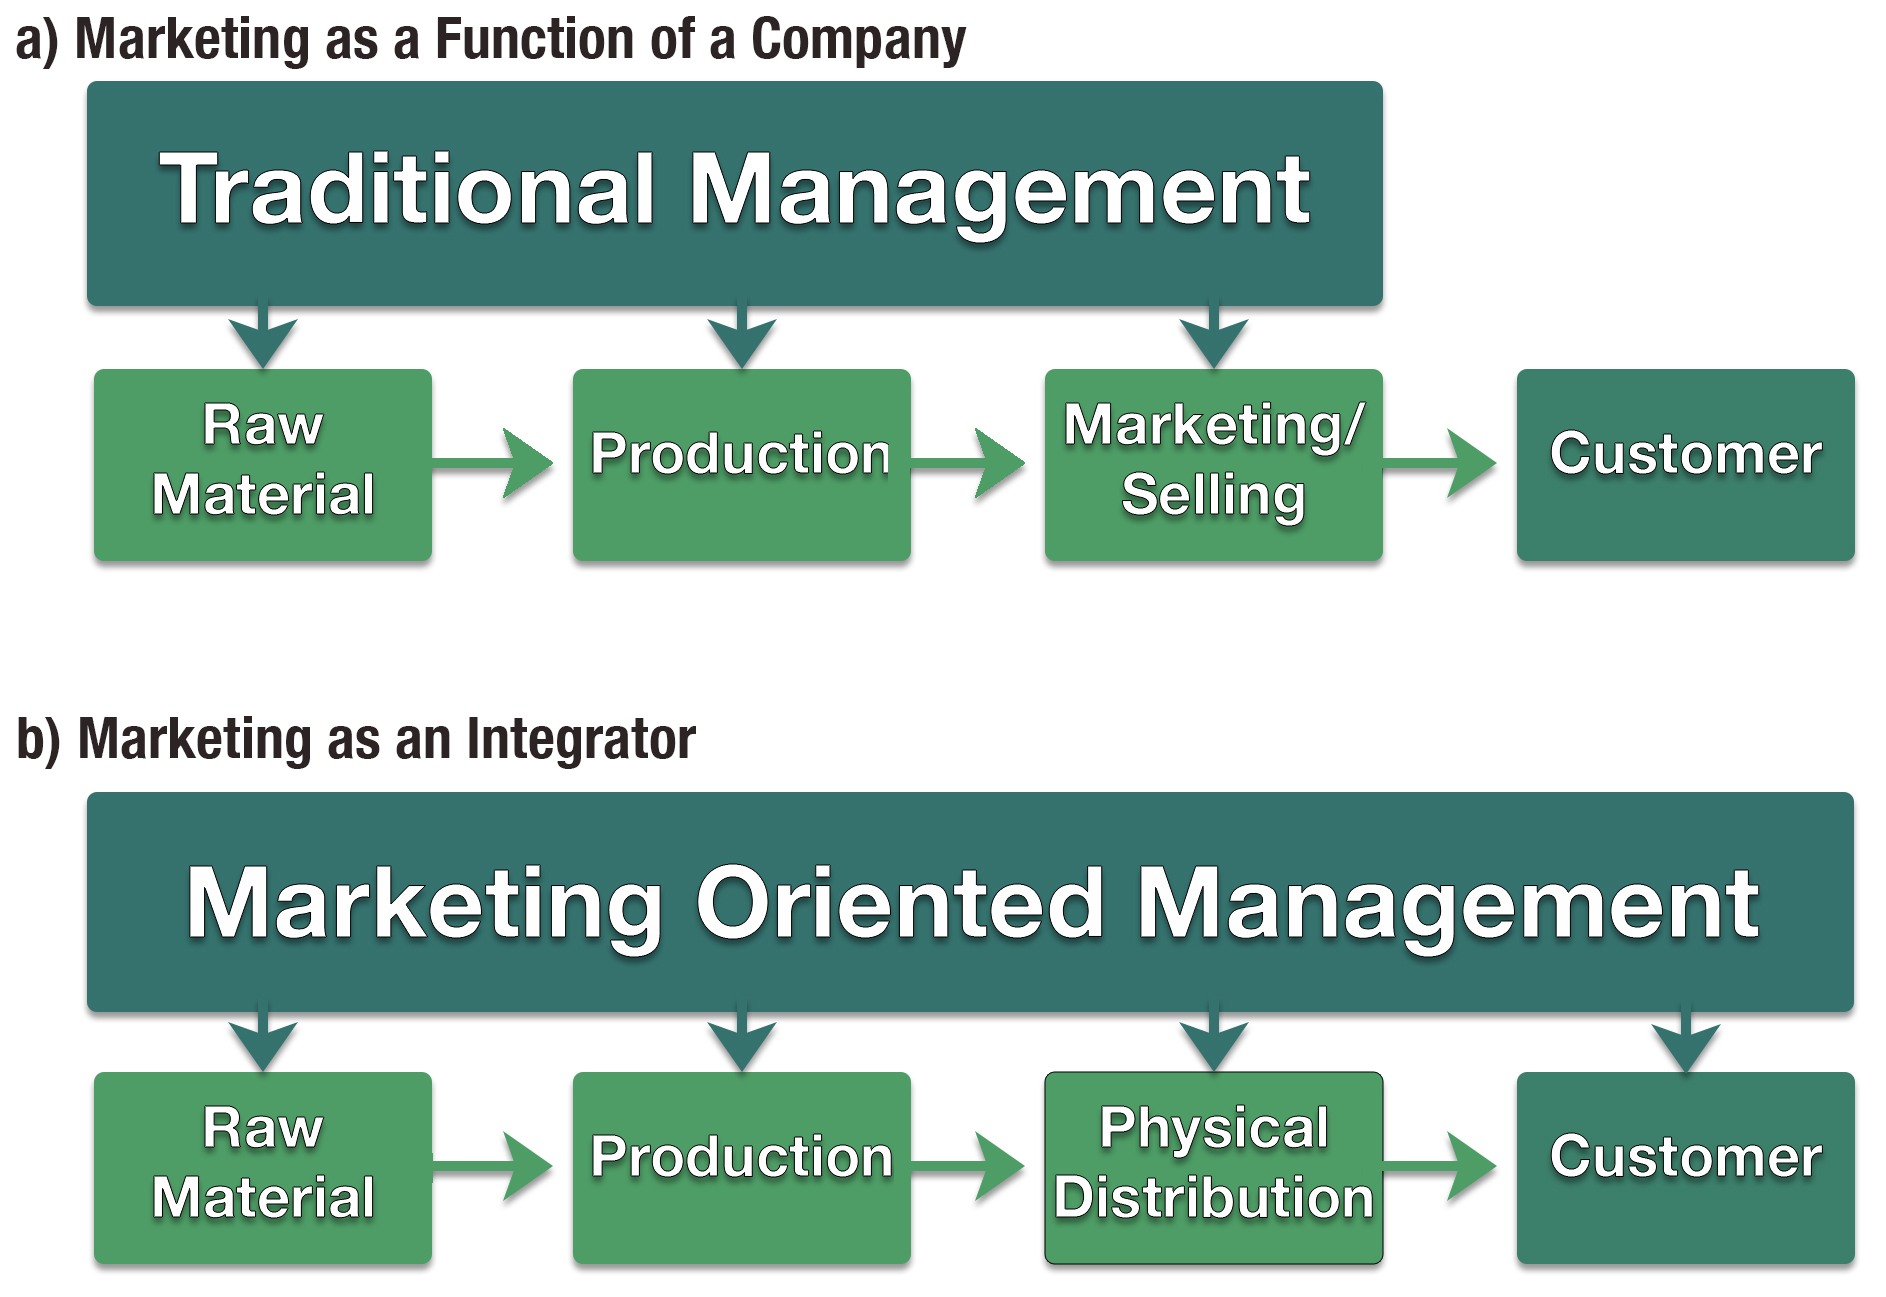 Marketing as a Function of the Company and as an Integrator